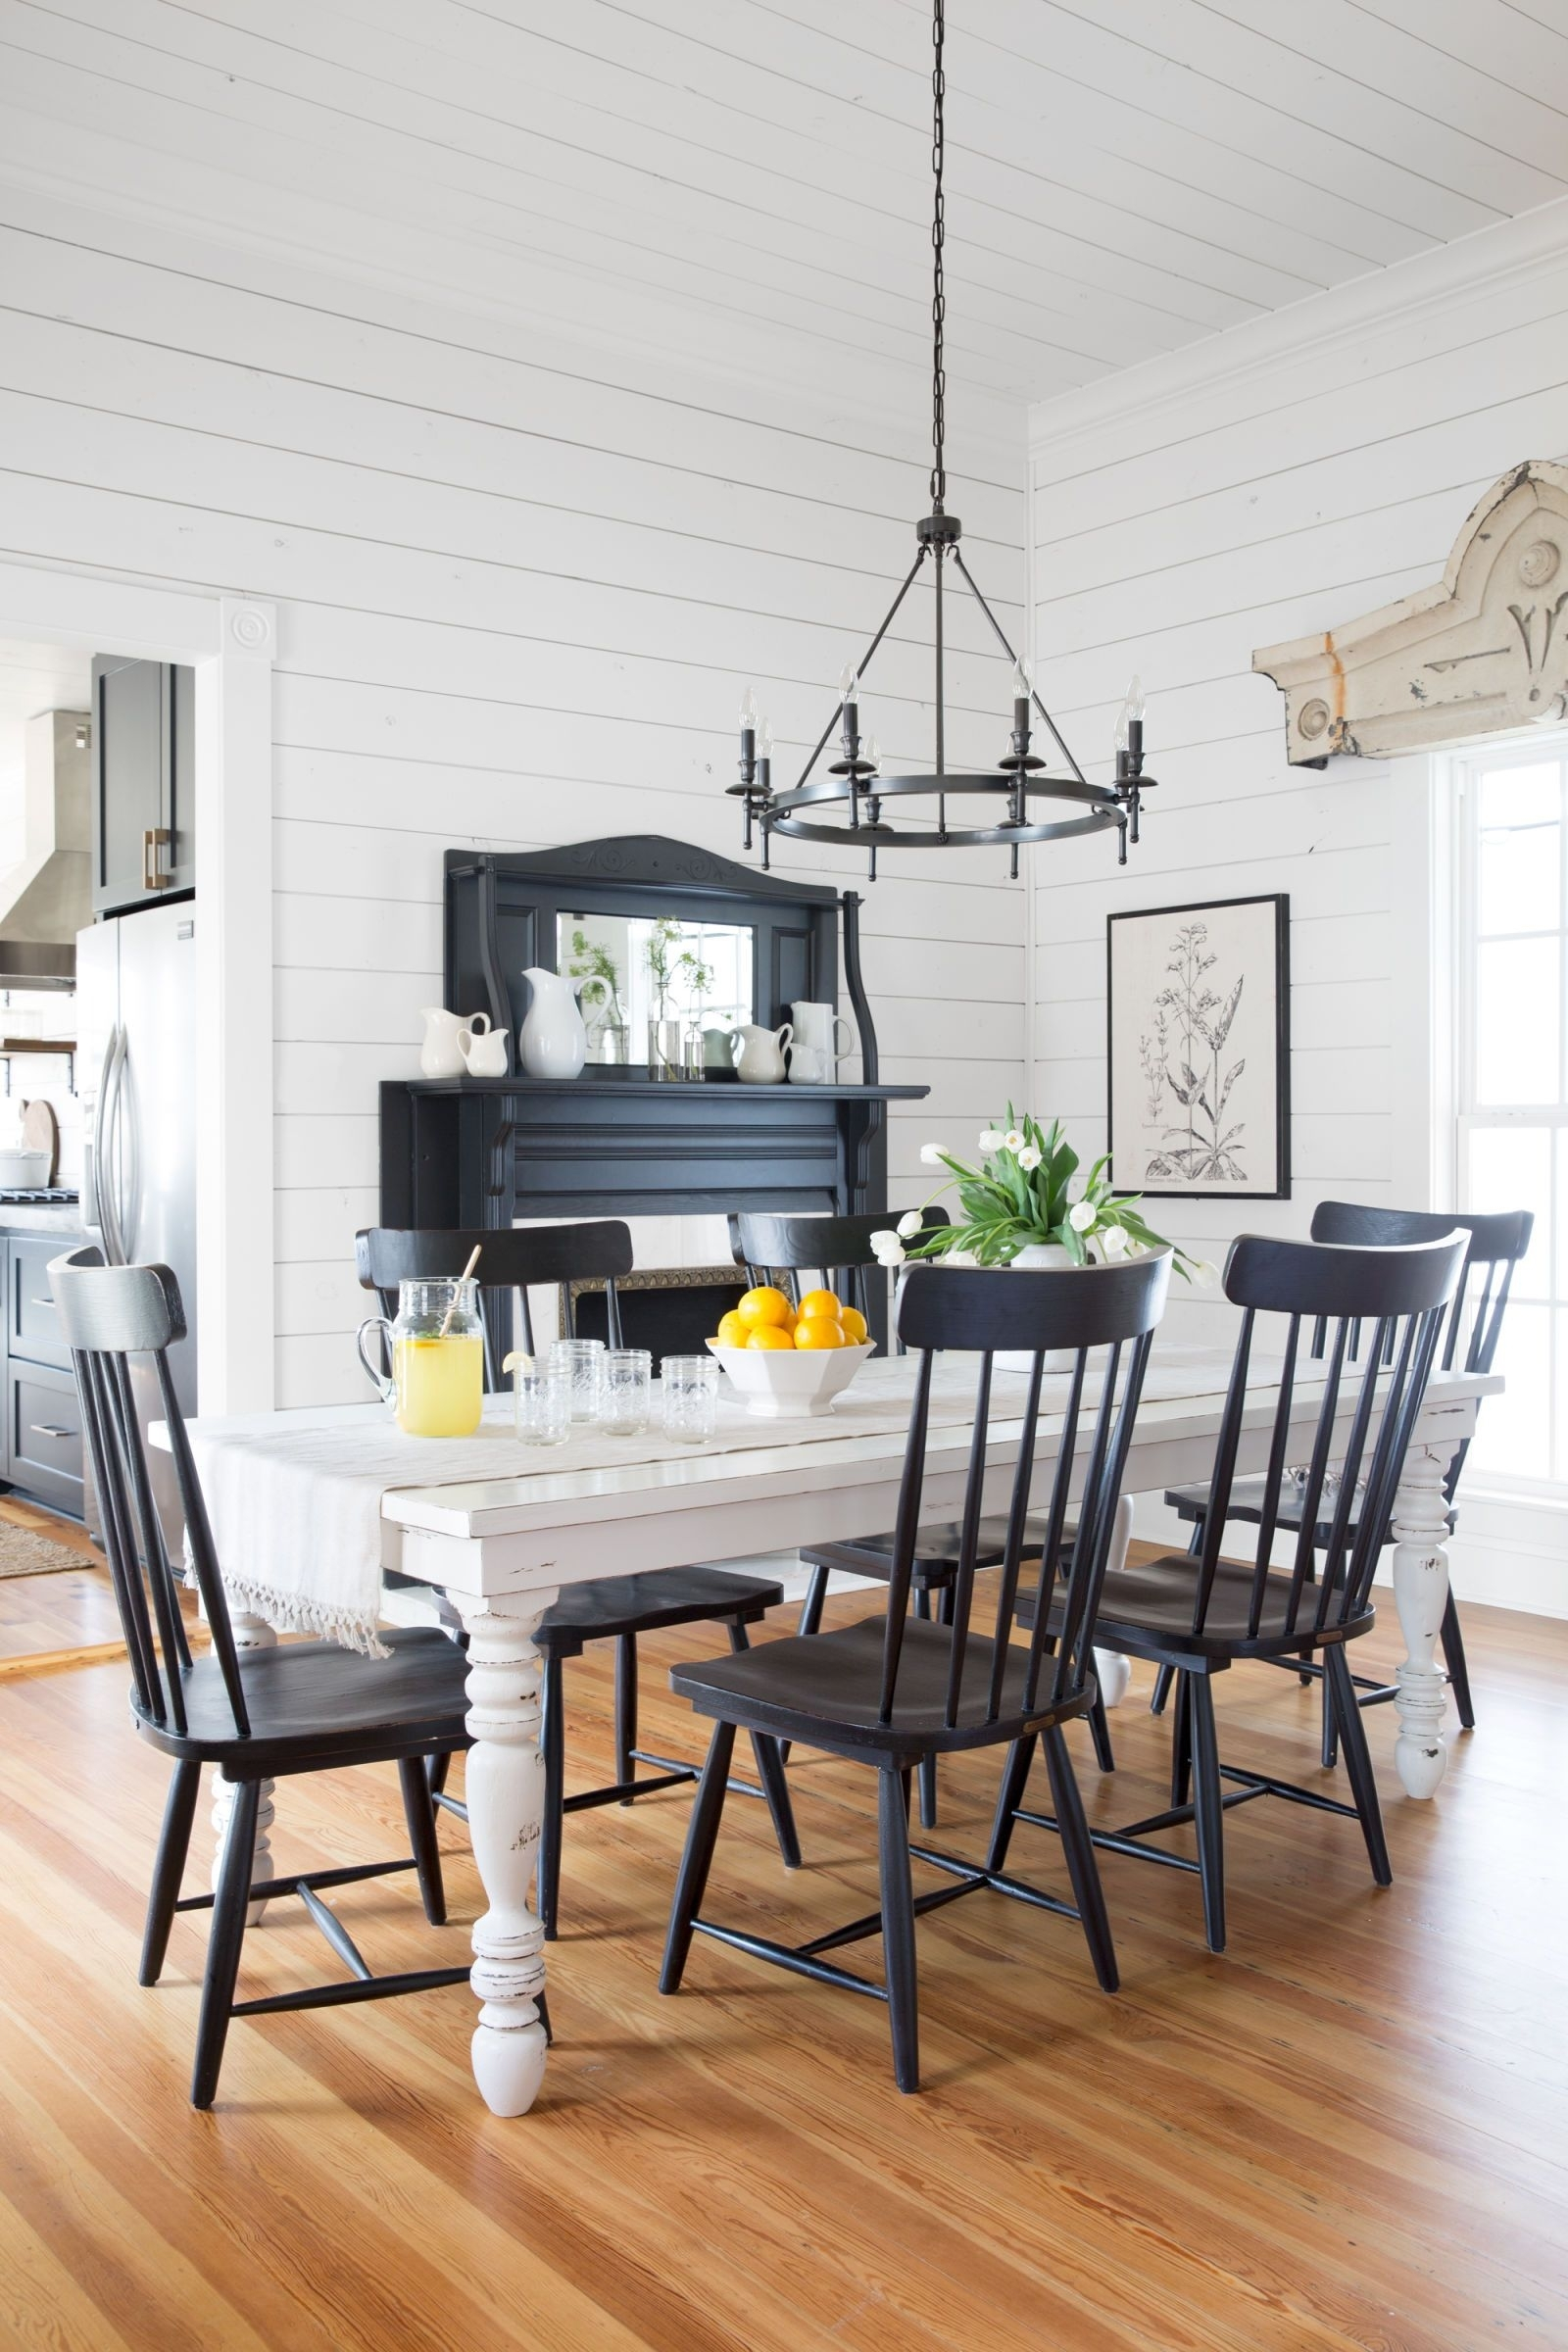 Take A Tour Of Chip And Joanna Gaines' Magnolia House B&b | Country For Most Recently Released Magnolia Home Bench Keeping 96 Inch Dining Tables (Image 16 of 20)